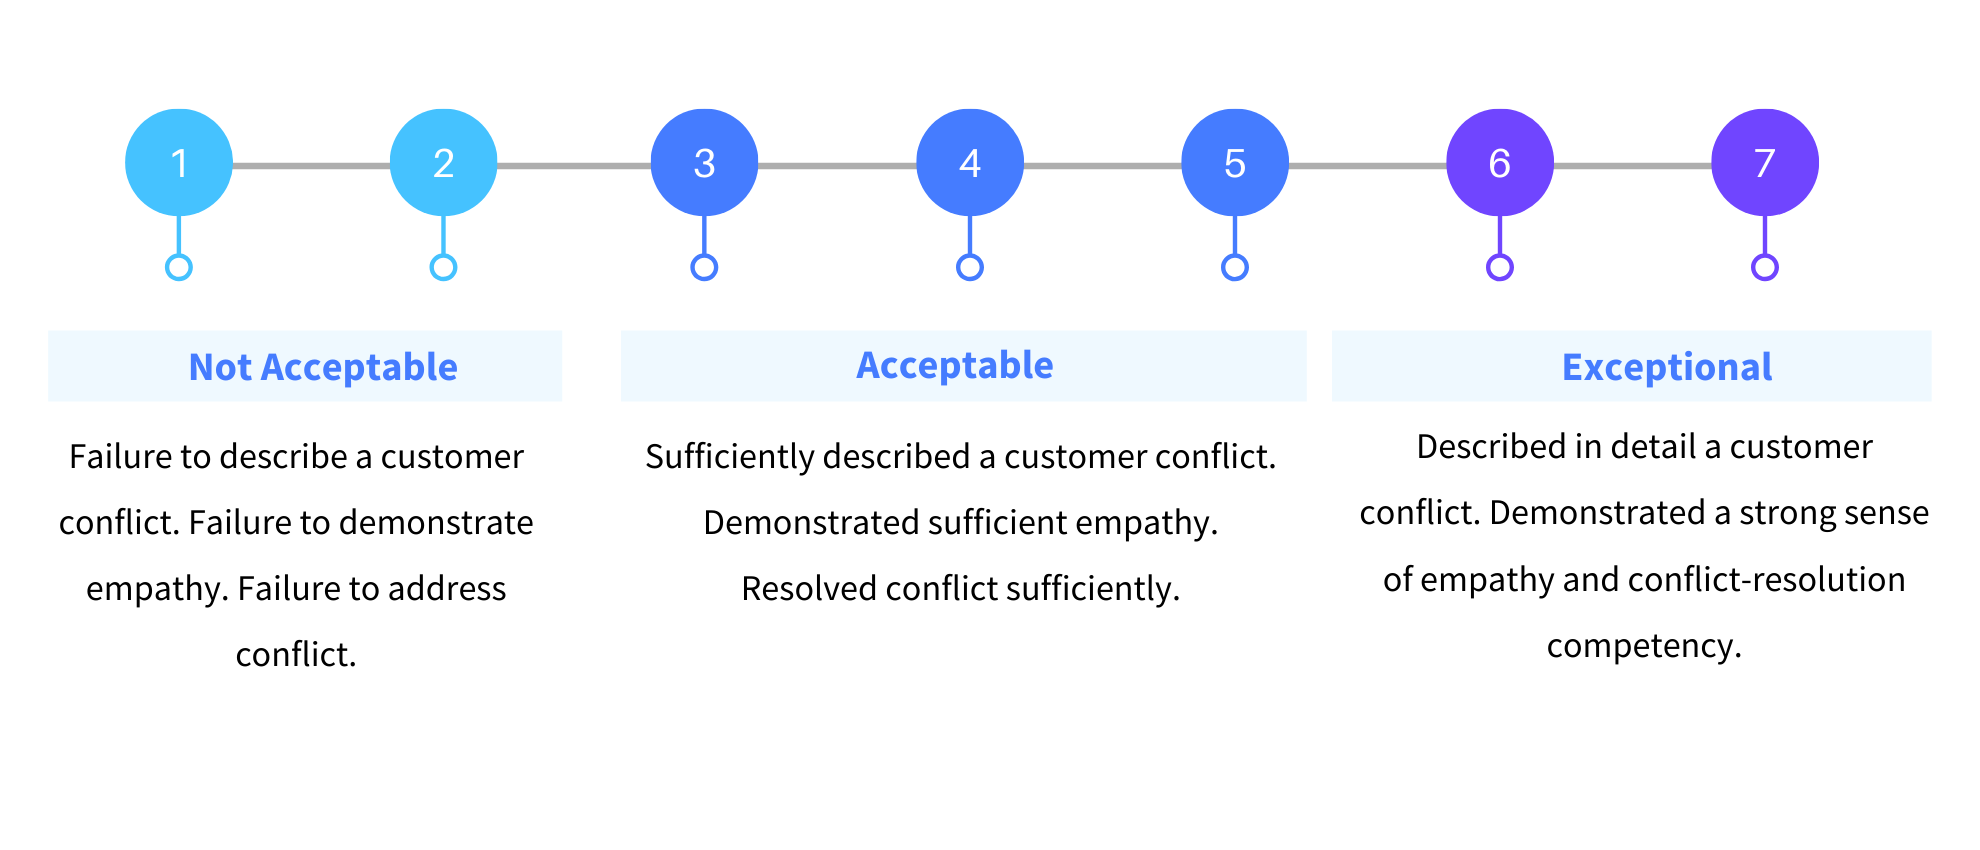 Behavioral Question BARS Metric Scale for Interpersonal Awareness and Customer Orientation